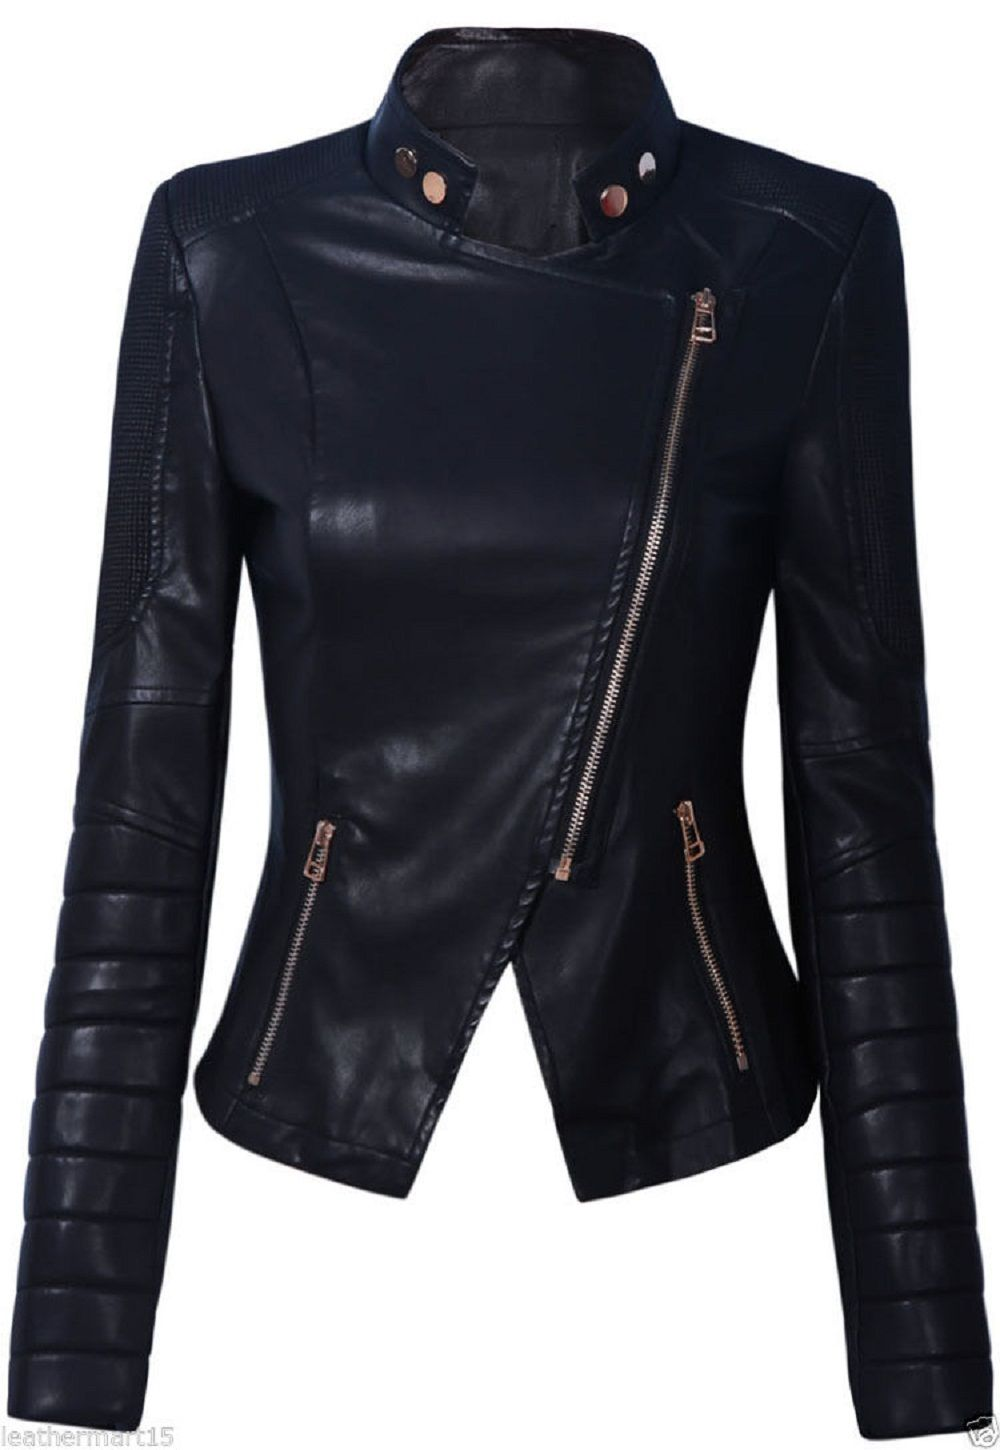 Women's Customised Black colour Leather jackets